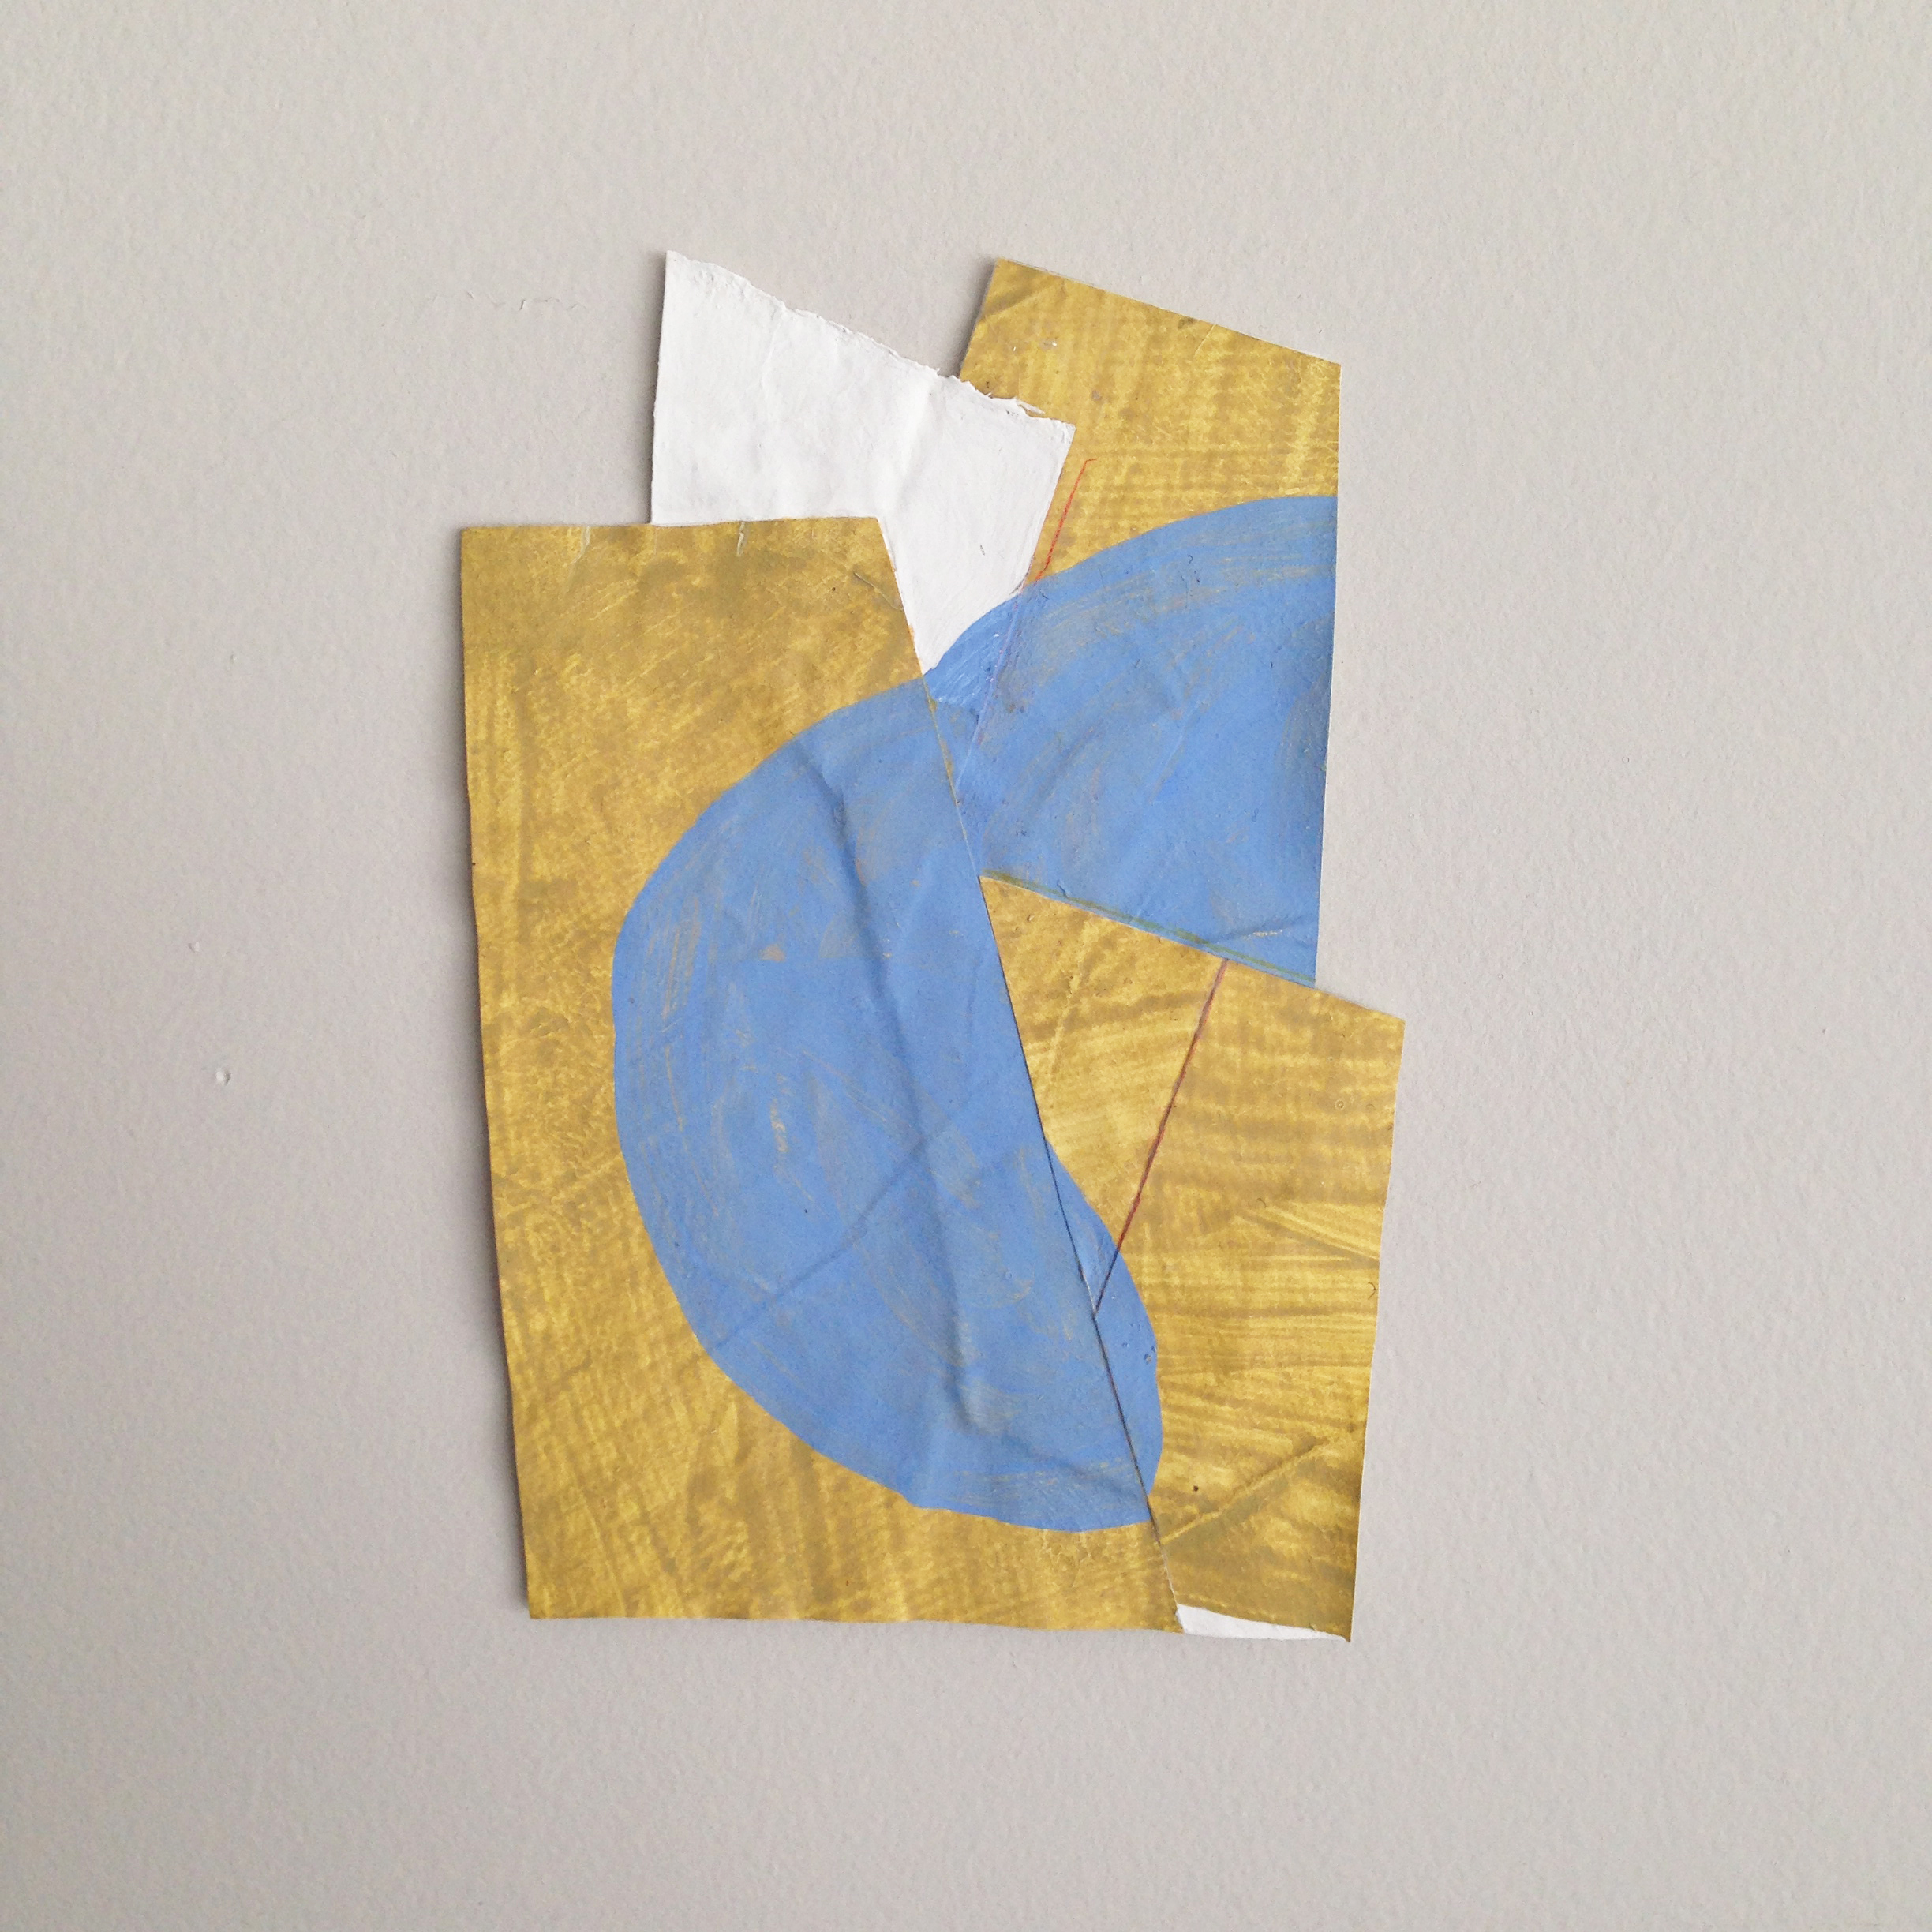 Disrupted Drawing Small 46, 2015, gesso, gouache, acrylic and colored pencil on rice paper, 5 1/2 x 3 3/4""